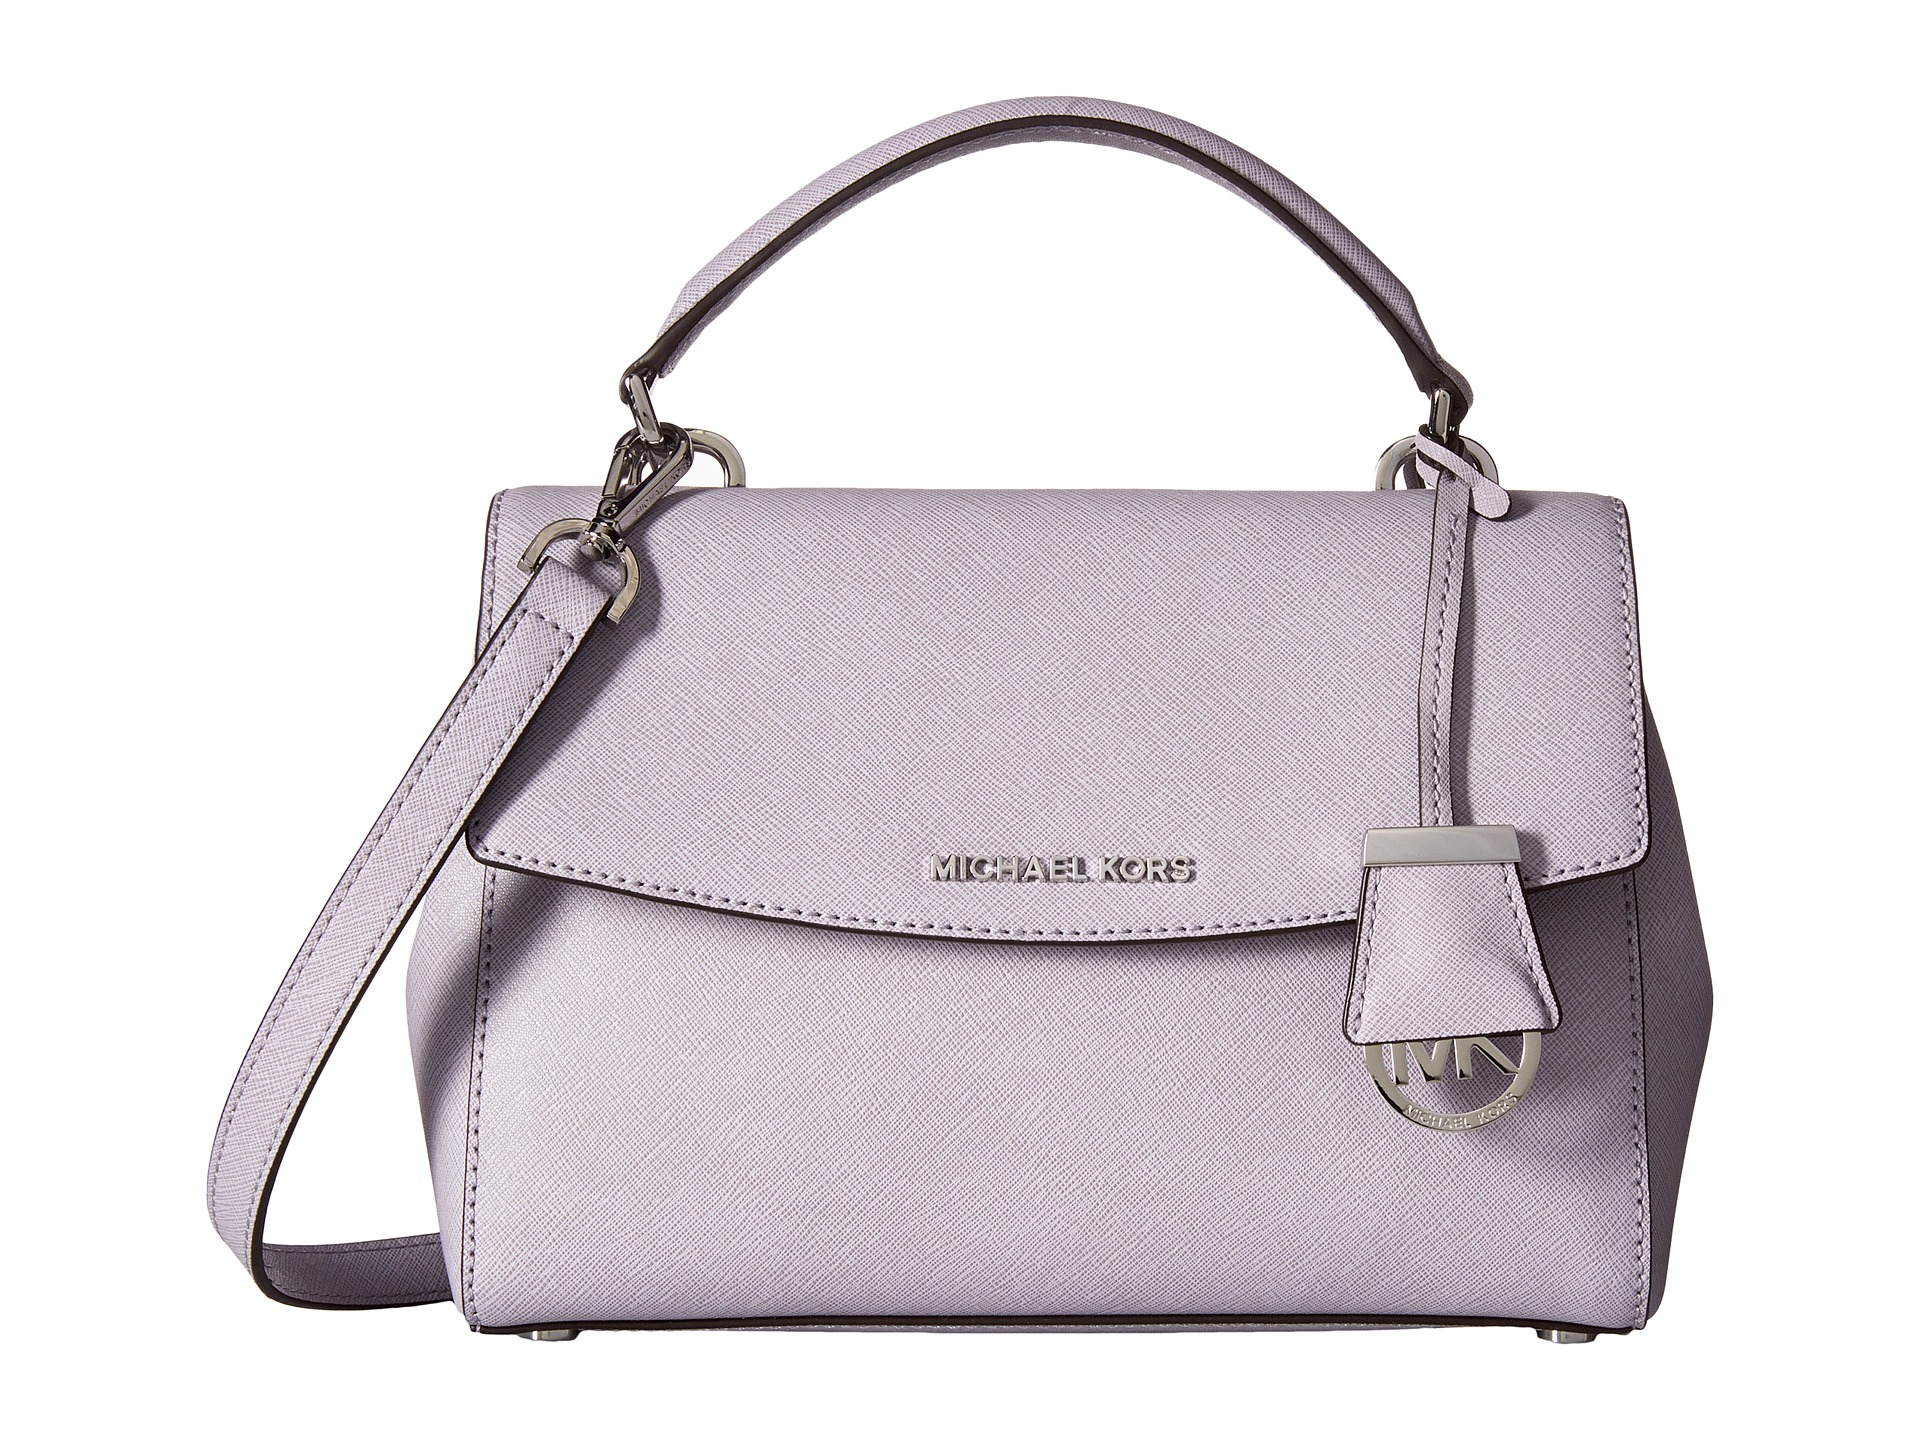 832e6fe601c0 order michael kors nylon crossbody bag 29d4c 76e19  coupon for lyst michael  michael kors ava small top handle satchel in purple f1c9a 91f4c